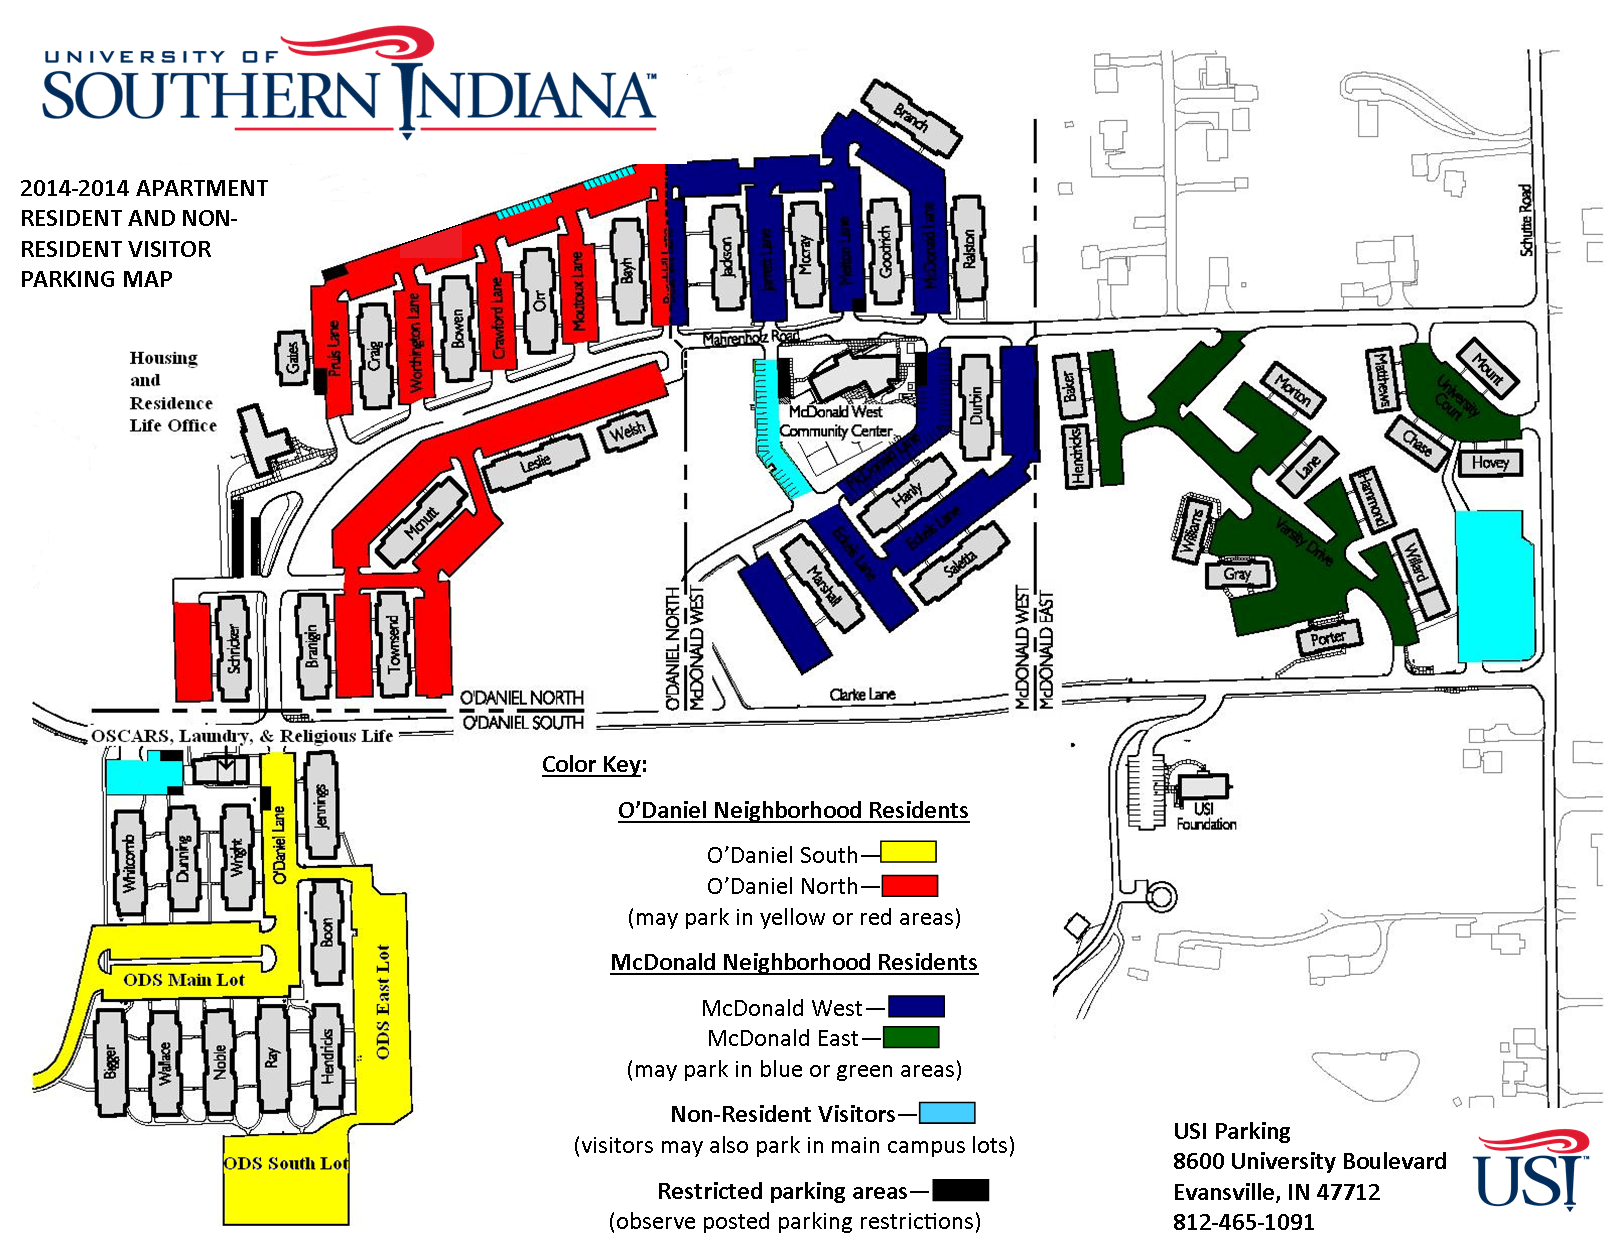 Hrl Resident Parking Maps University Of Southern Indiana